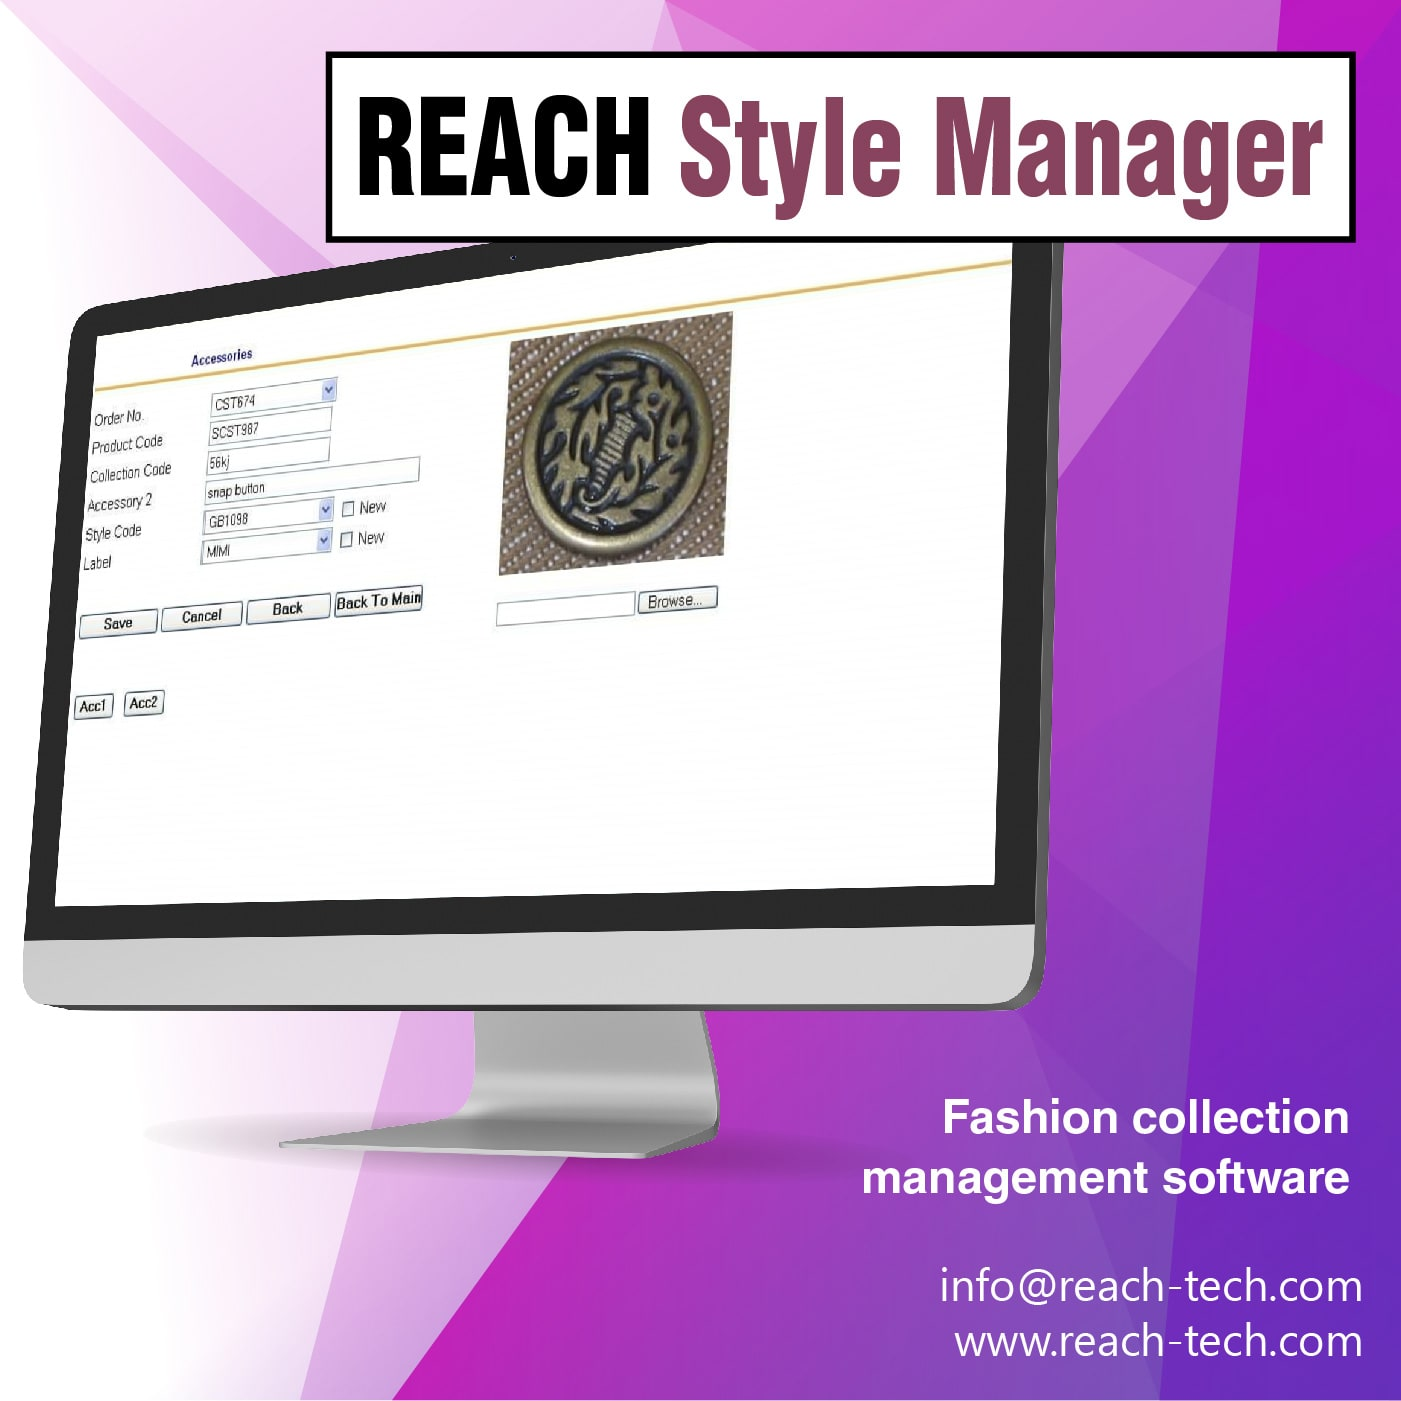 clothing-collection-management-software-3